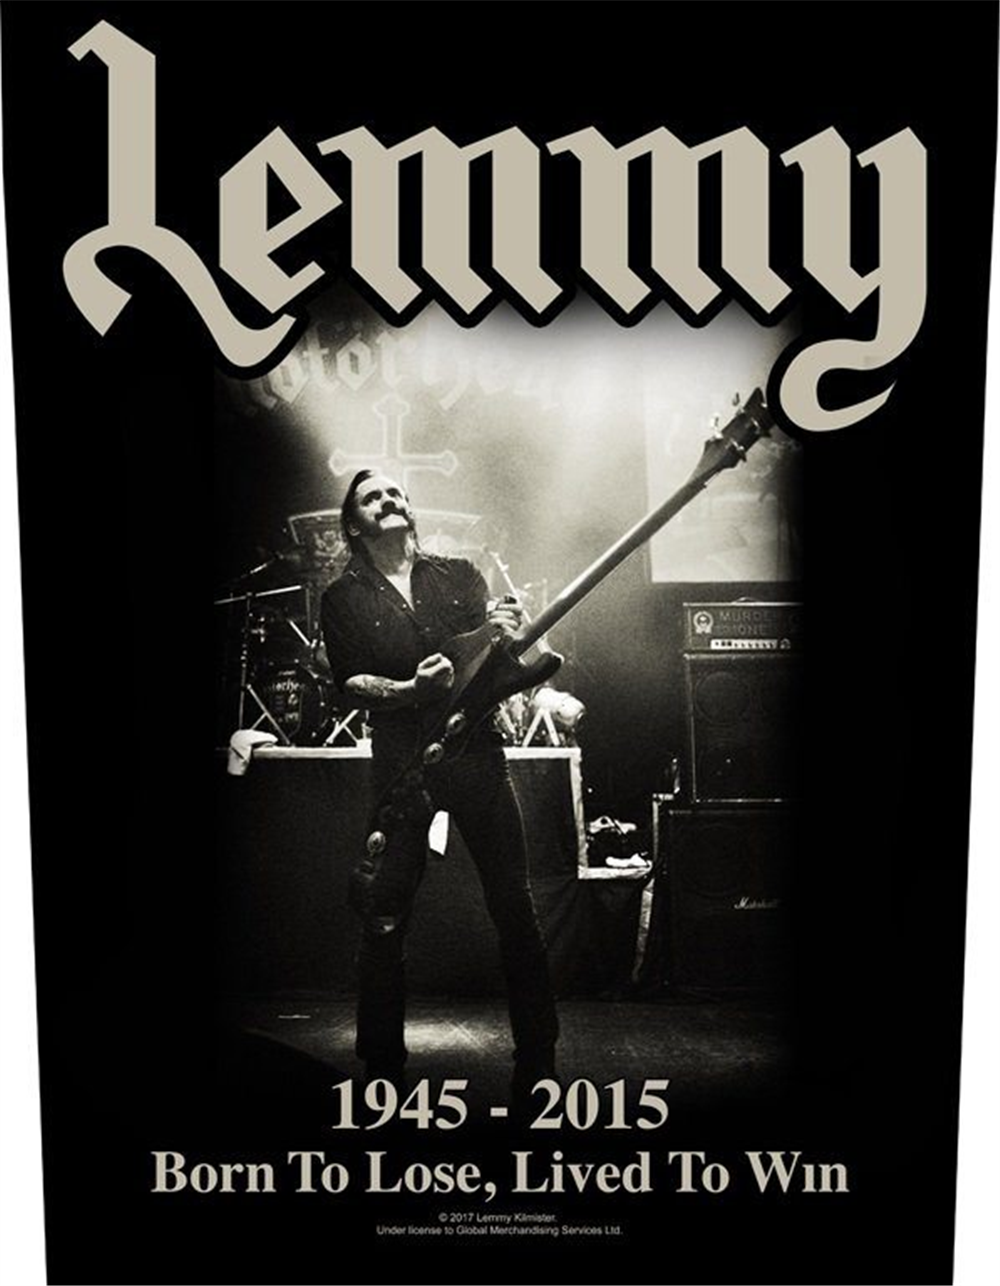 Lemmy 1945-2015 Patch